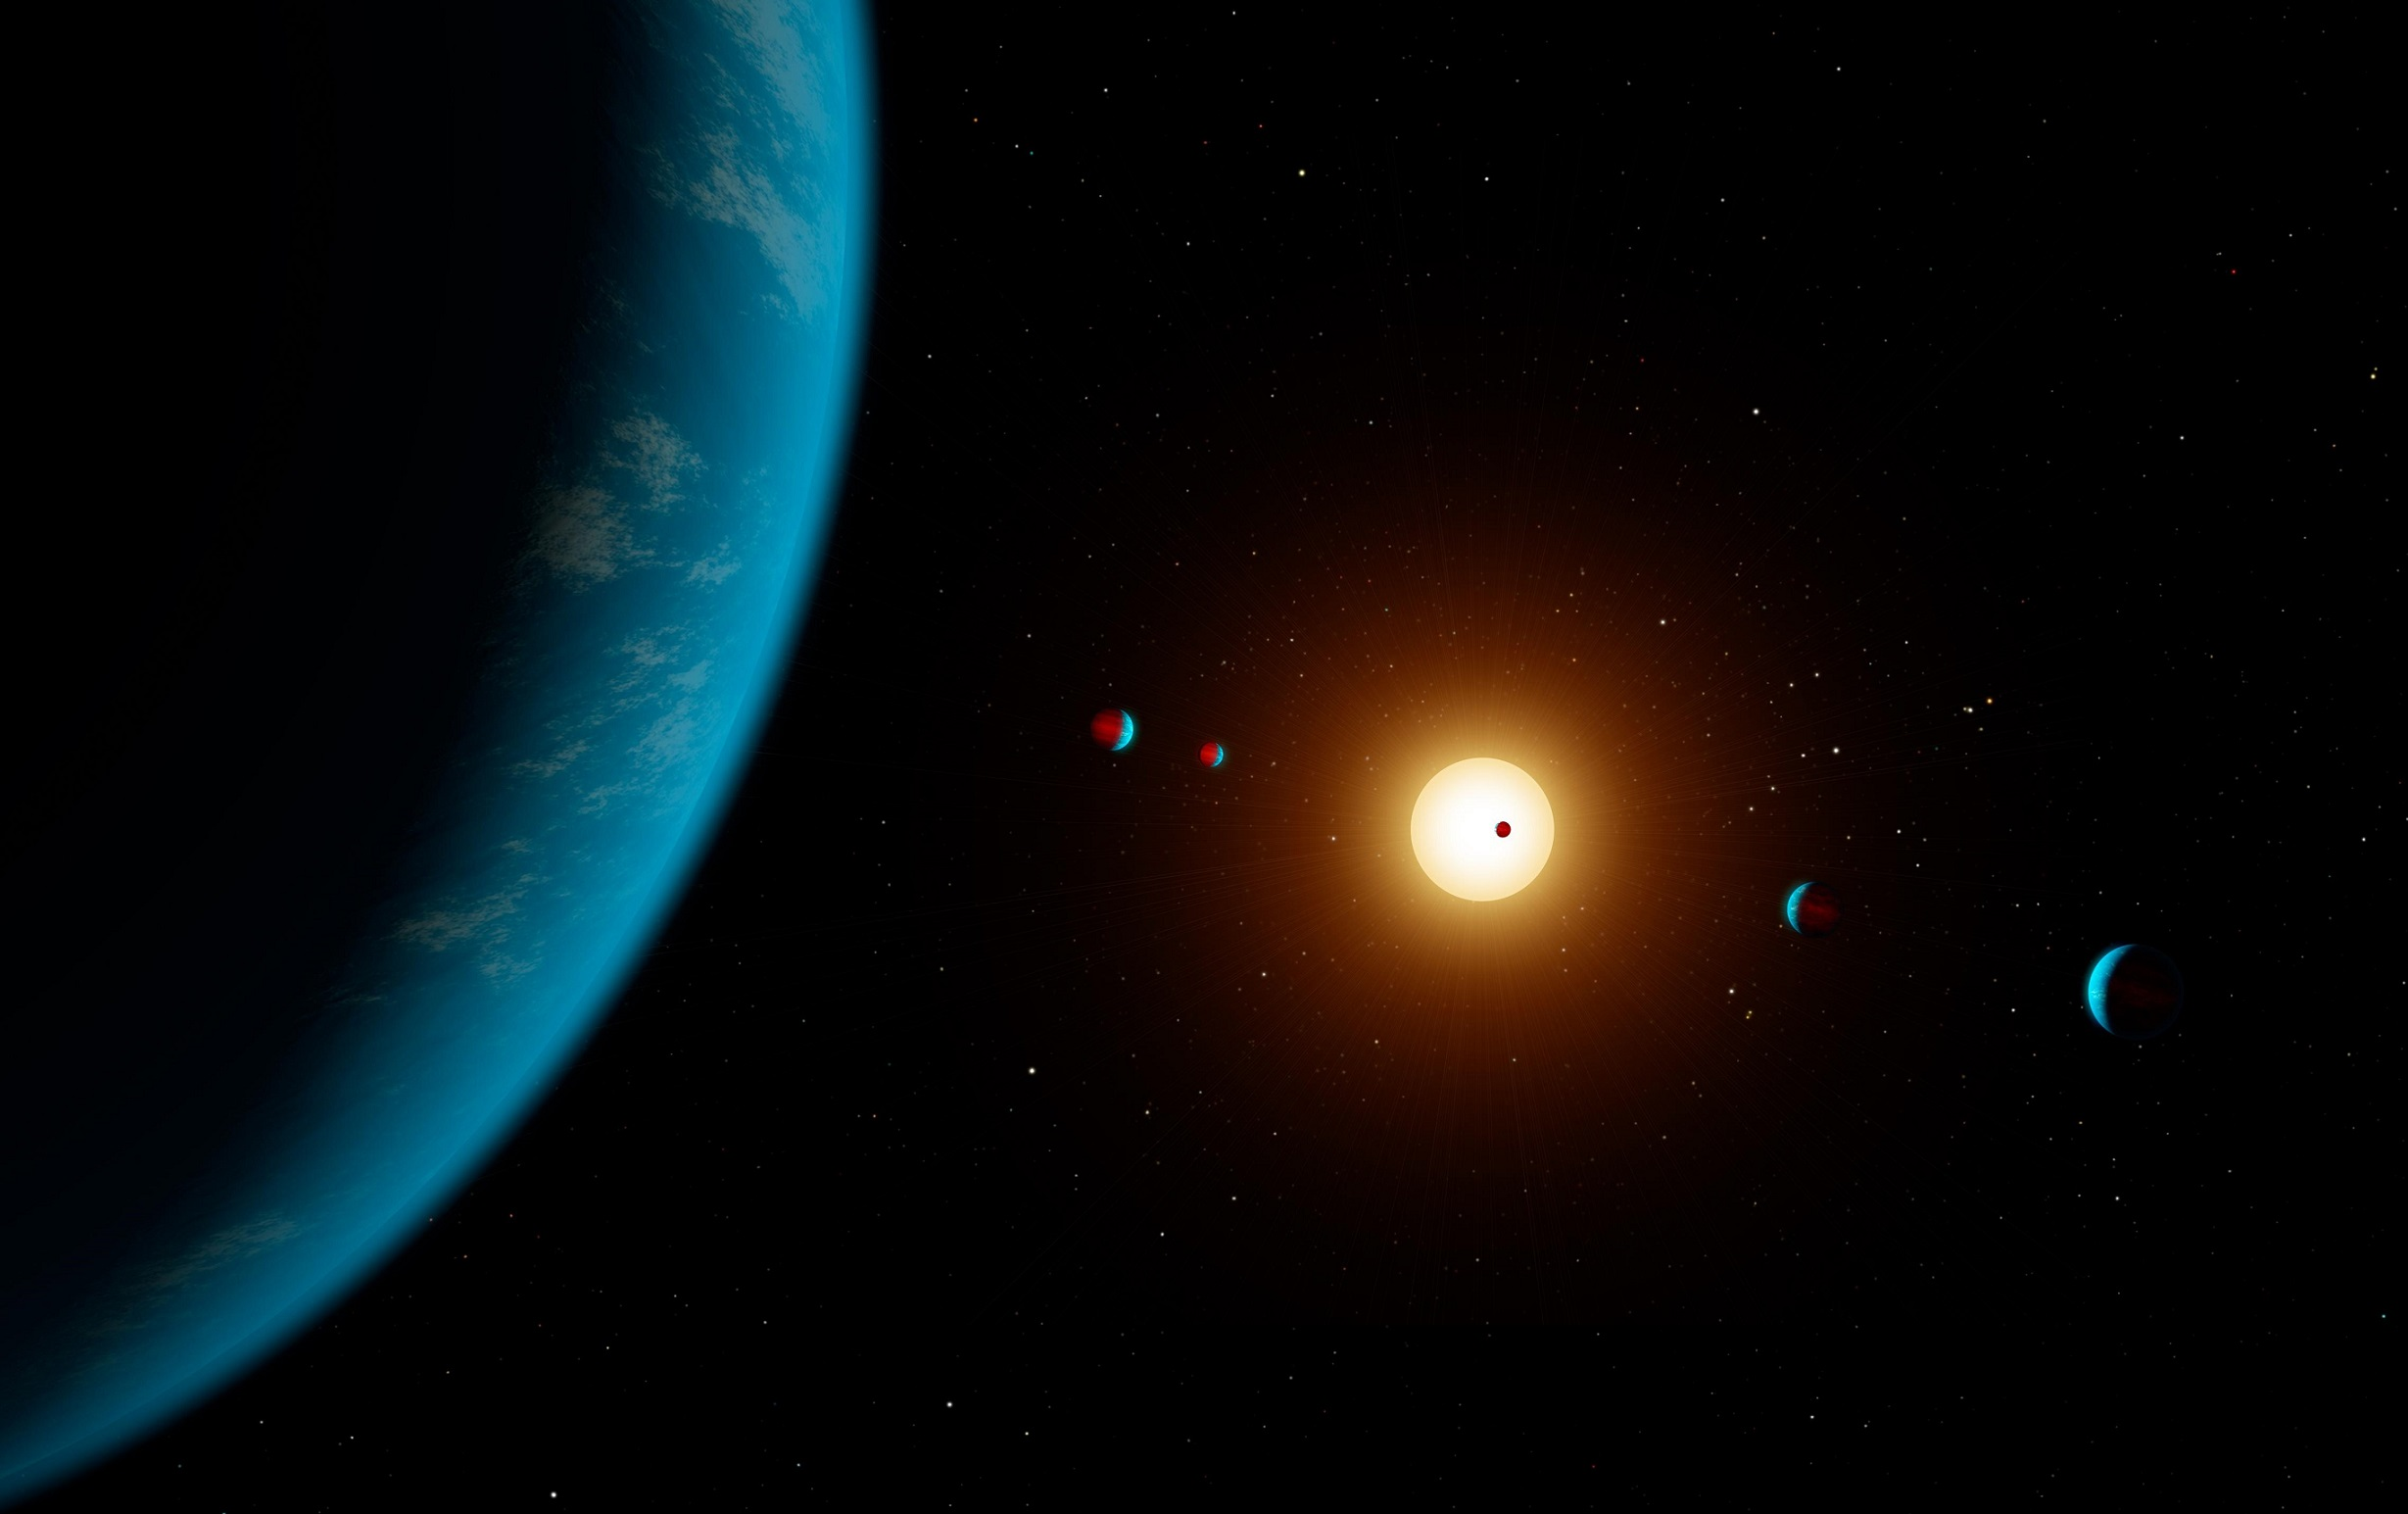 Artist's concept of K2-138 planetary system